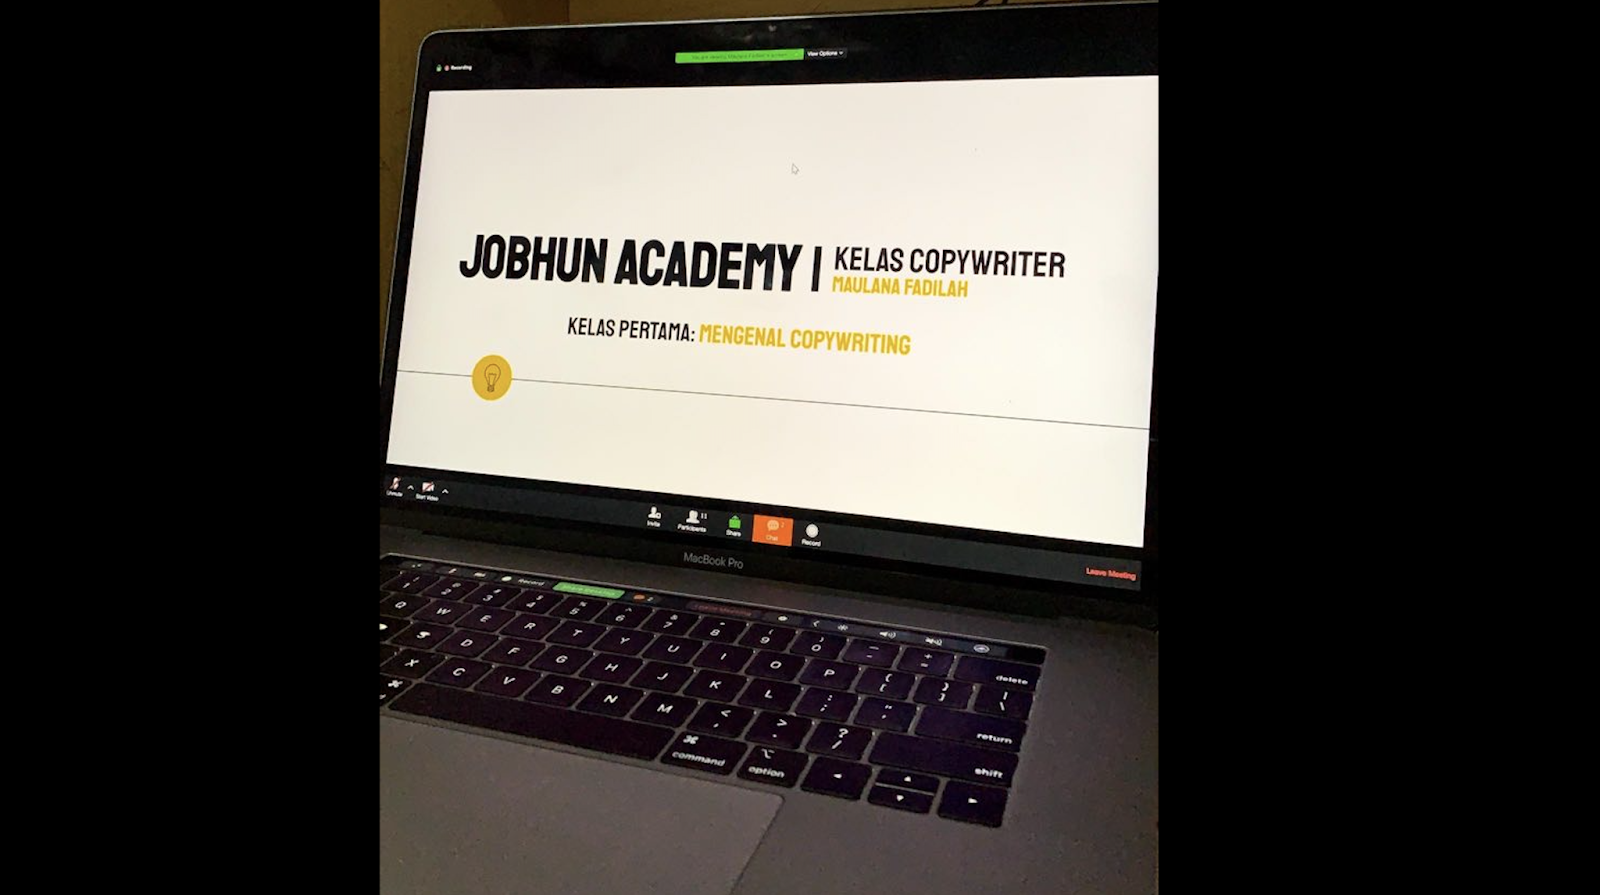 jobhun academy online learning copywriting